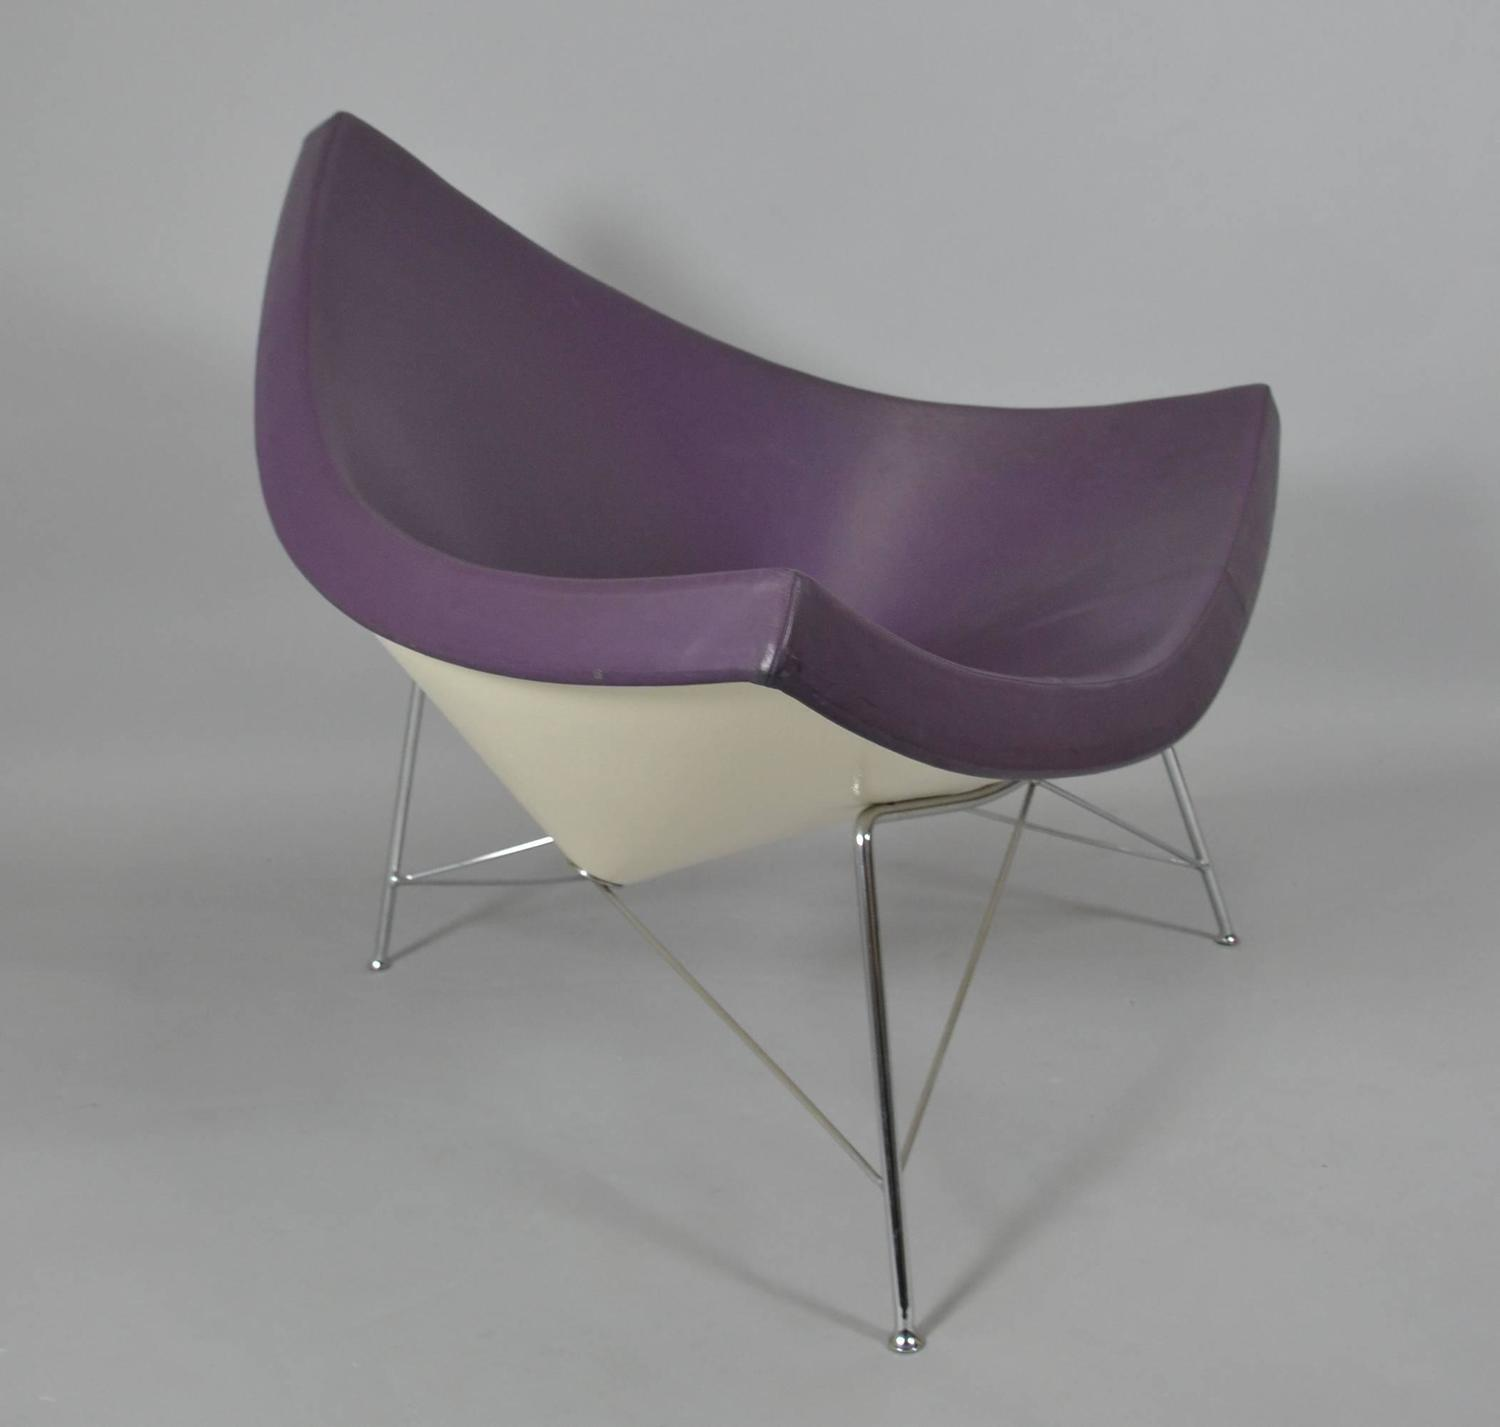 george nelson coconut chair in purple vitra production for sale at 1stdibs. Black Bedroom Furniture Sets. Home Design Ideas